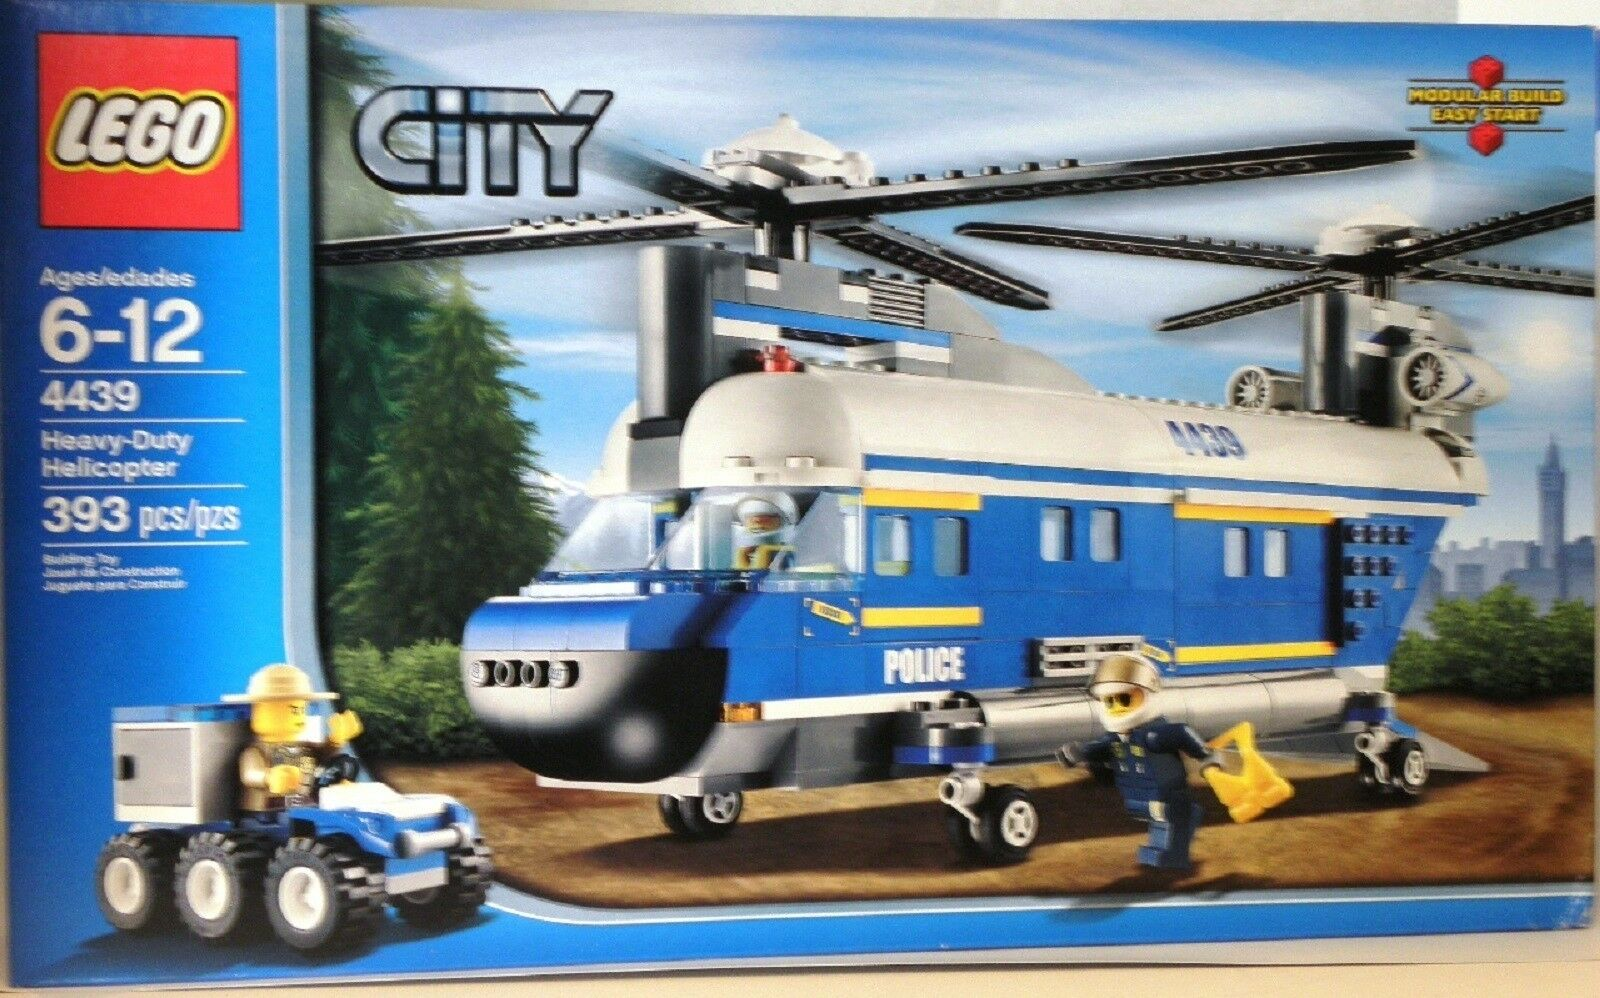 Lego città   Heavy-Duty Helicopter  4439  online economico